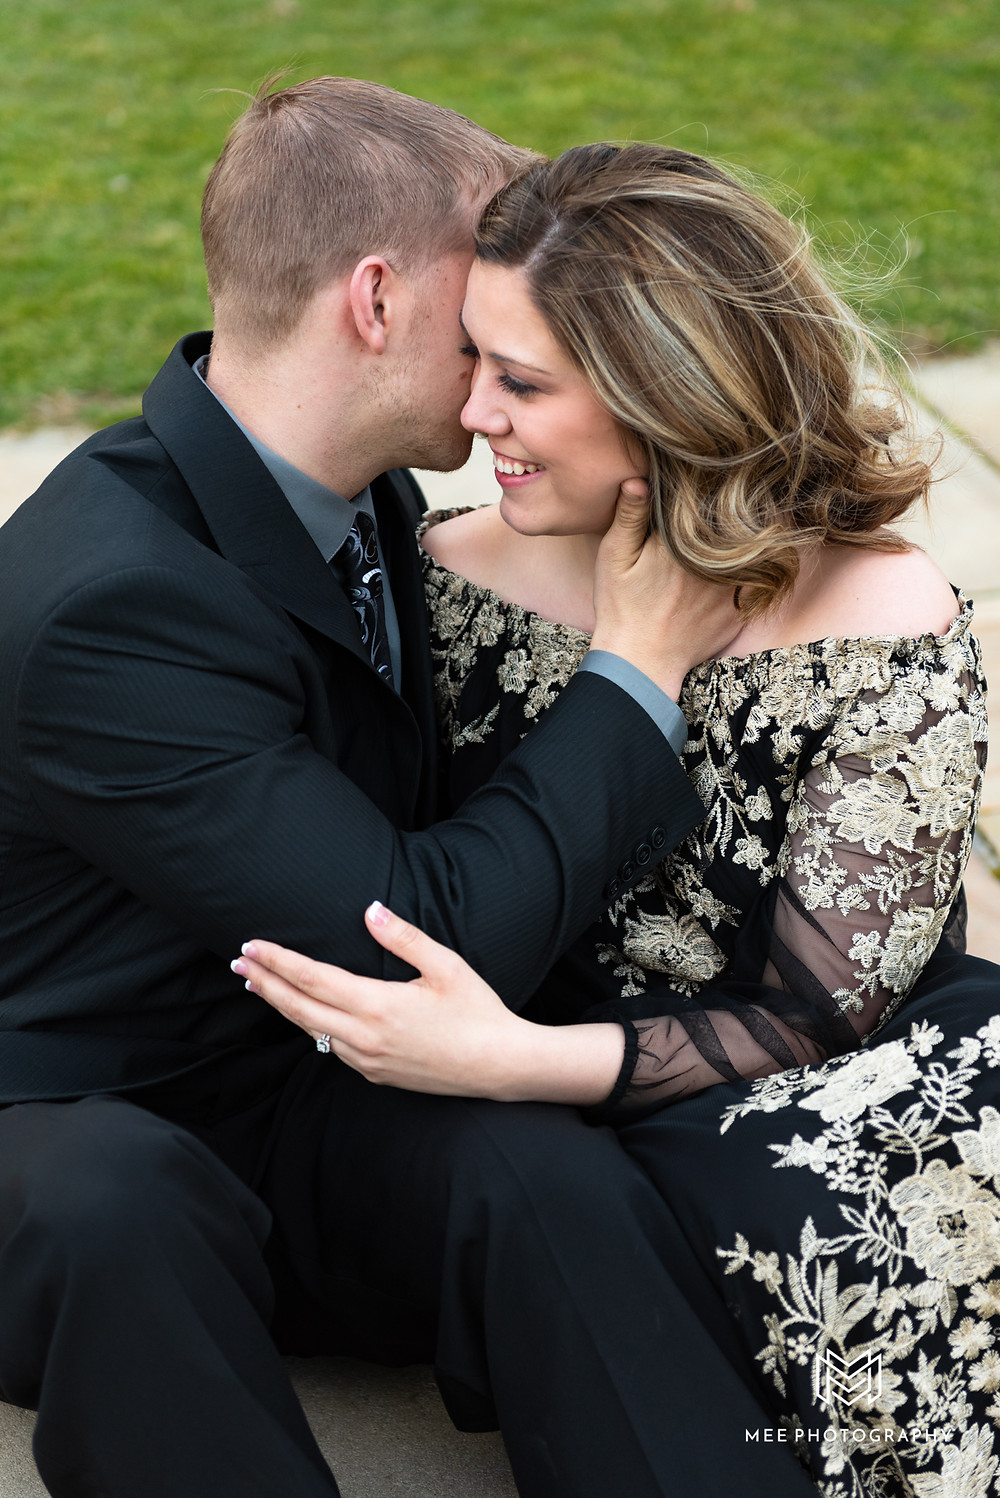 Guy whispering in girl's ear during engagement photos